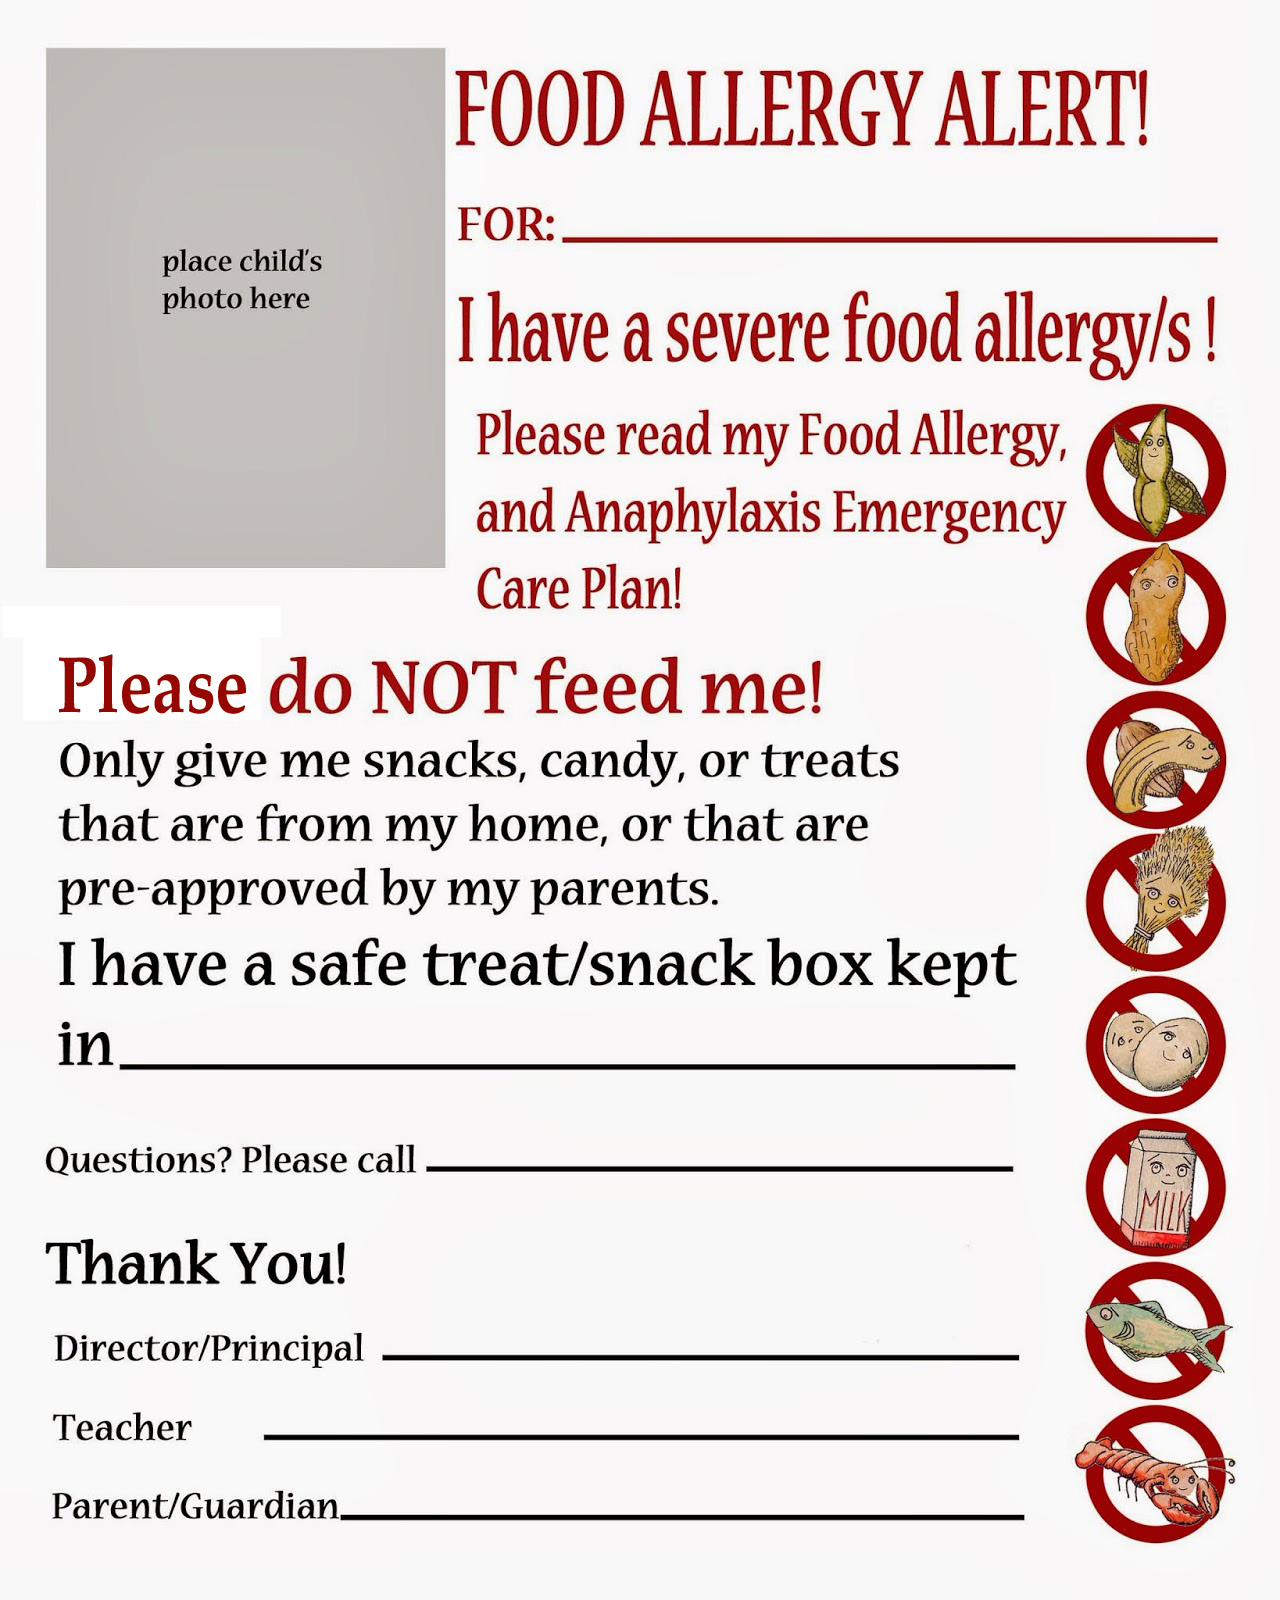 Thriving with allergies food allergy resources for the elementary a list of safe snacks that your child can have complete with brand names and a notice to check each label every time as companies can change ingredients at pronofoot35fo Gallery